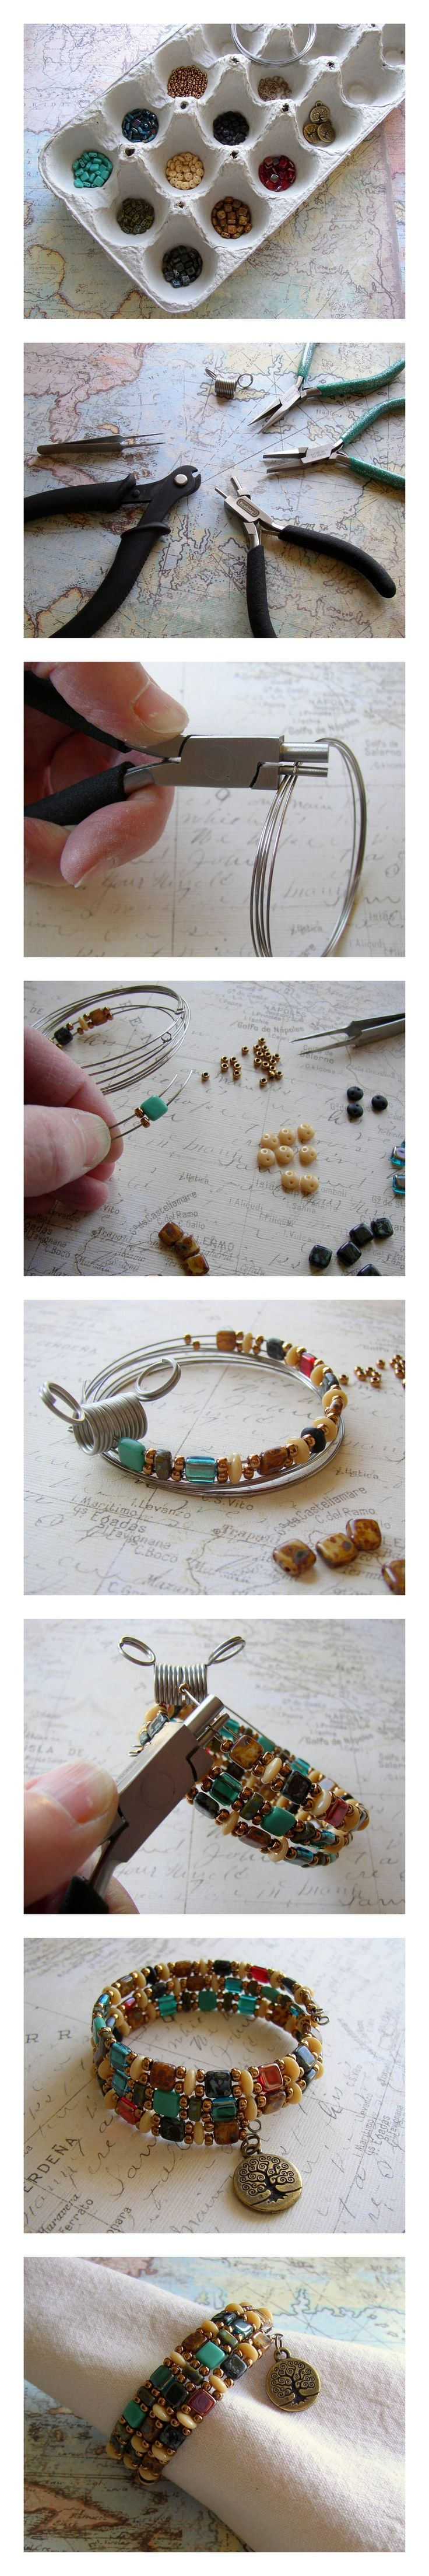 DIY Beaded Napkin Ring (or bracelet!).  Use memory wire, Czechmates two-hole beads, and a TierraCast charm to make this easy jewelry project.  Free instructions on Rings & Things jewelry making blog.